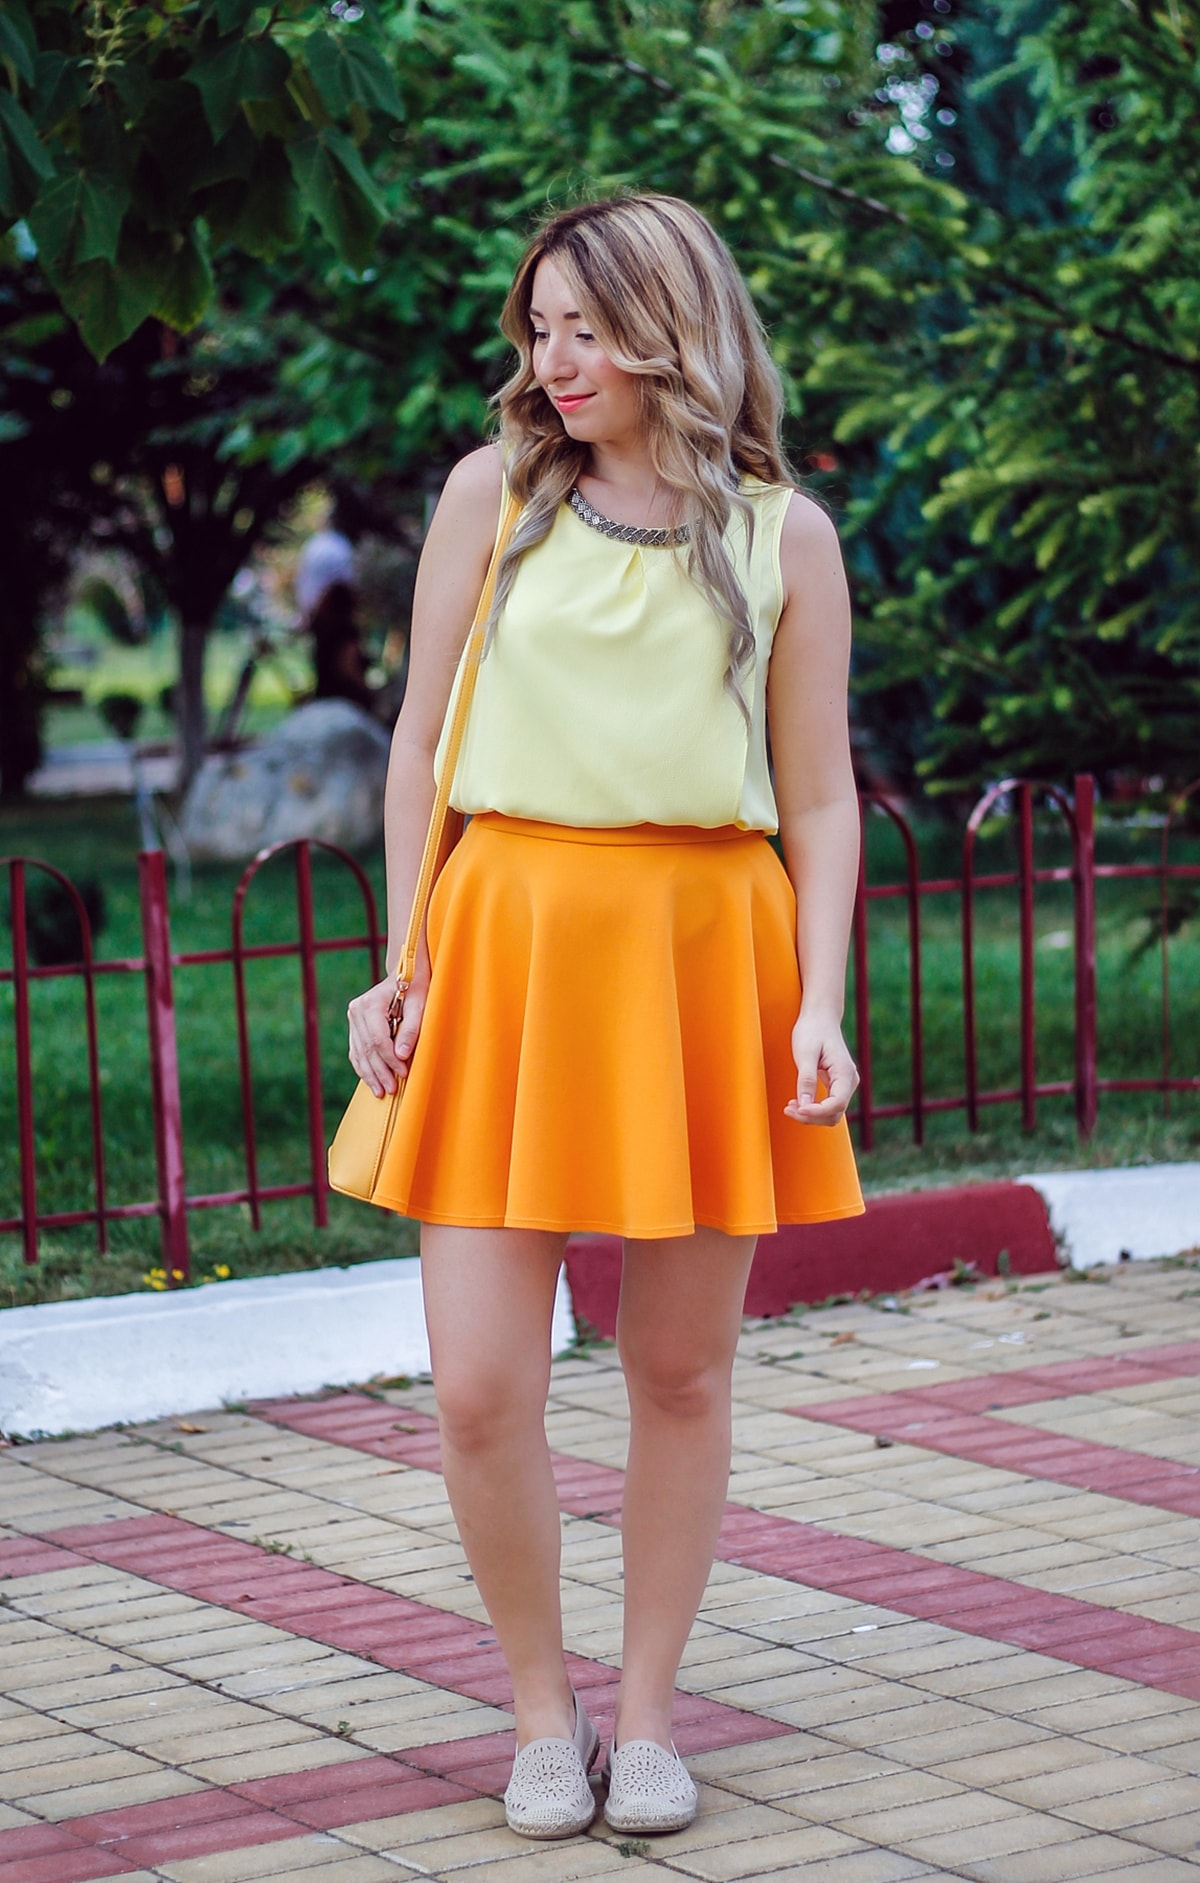 Street style: yellow top, orange skirt, yellow bag, nude shoes, tone on tone